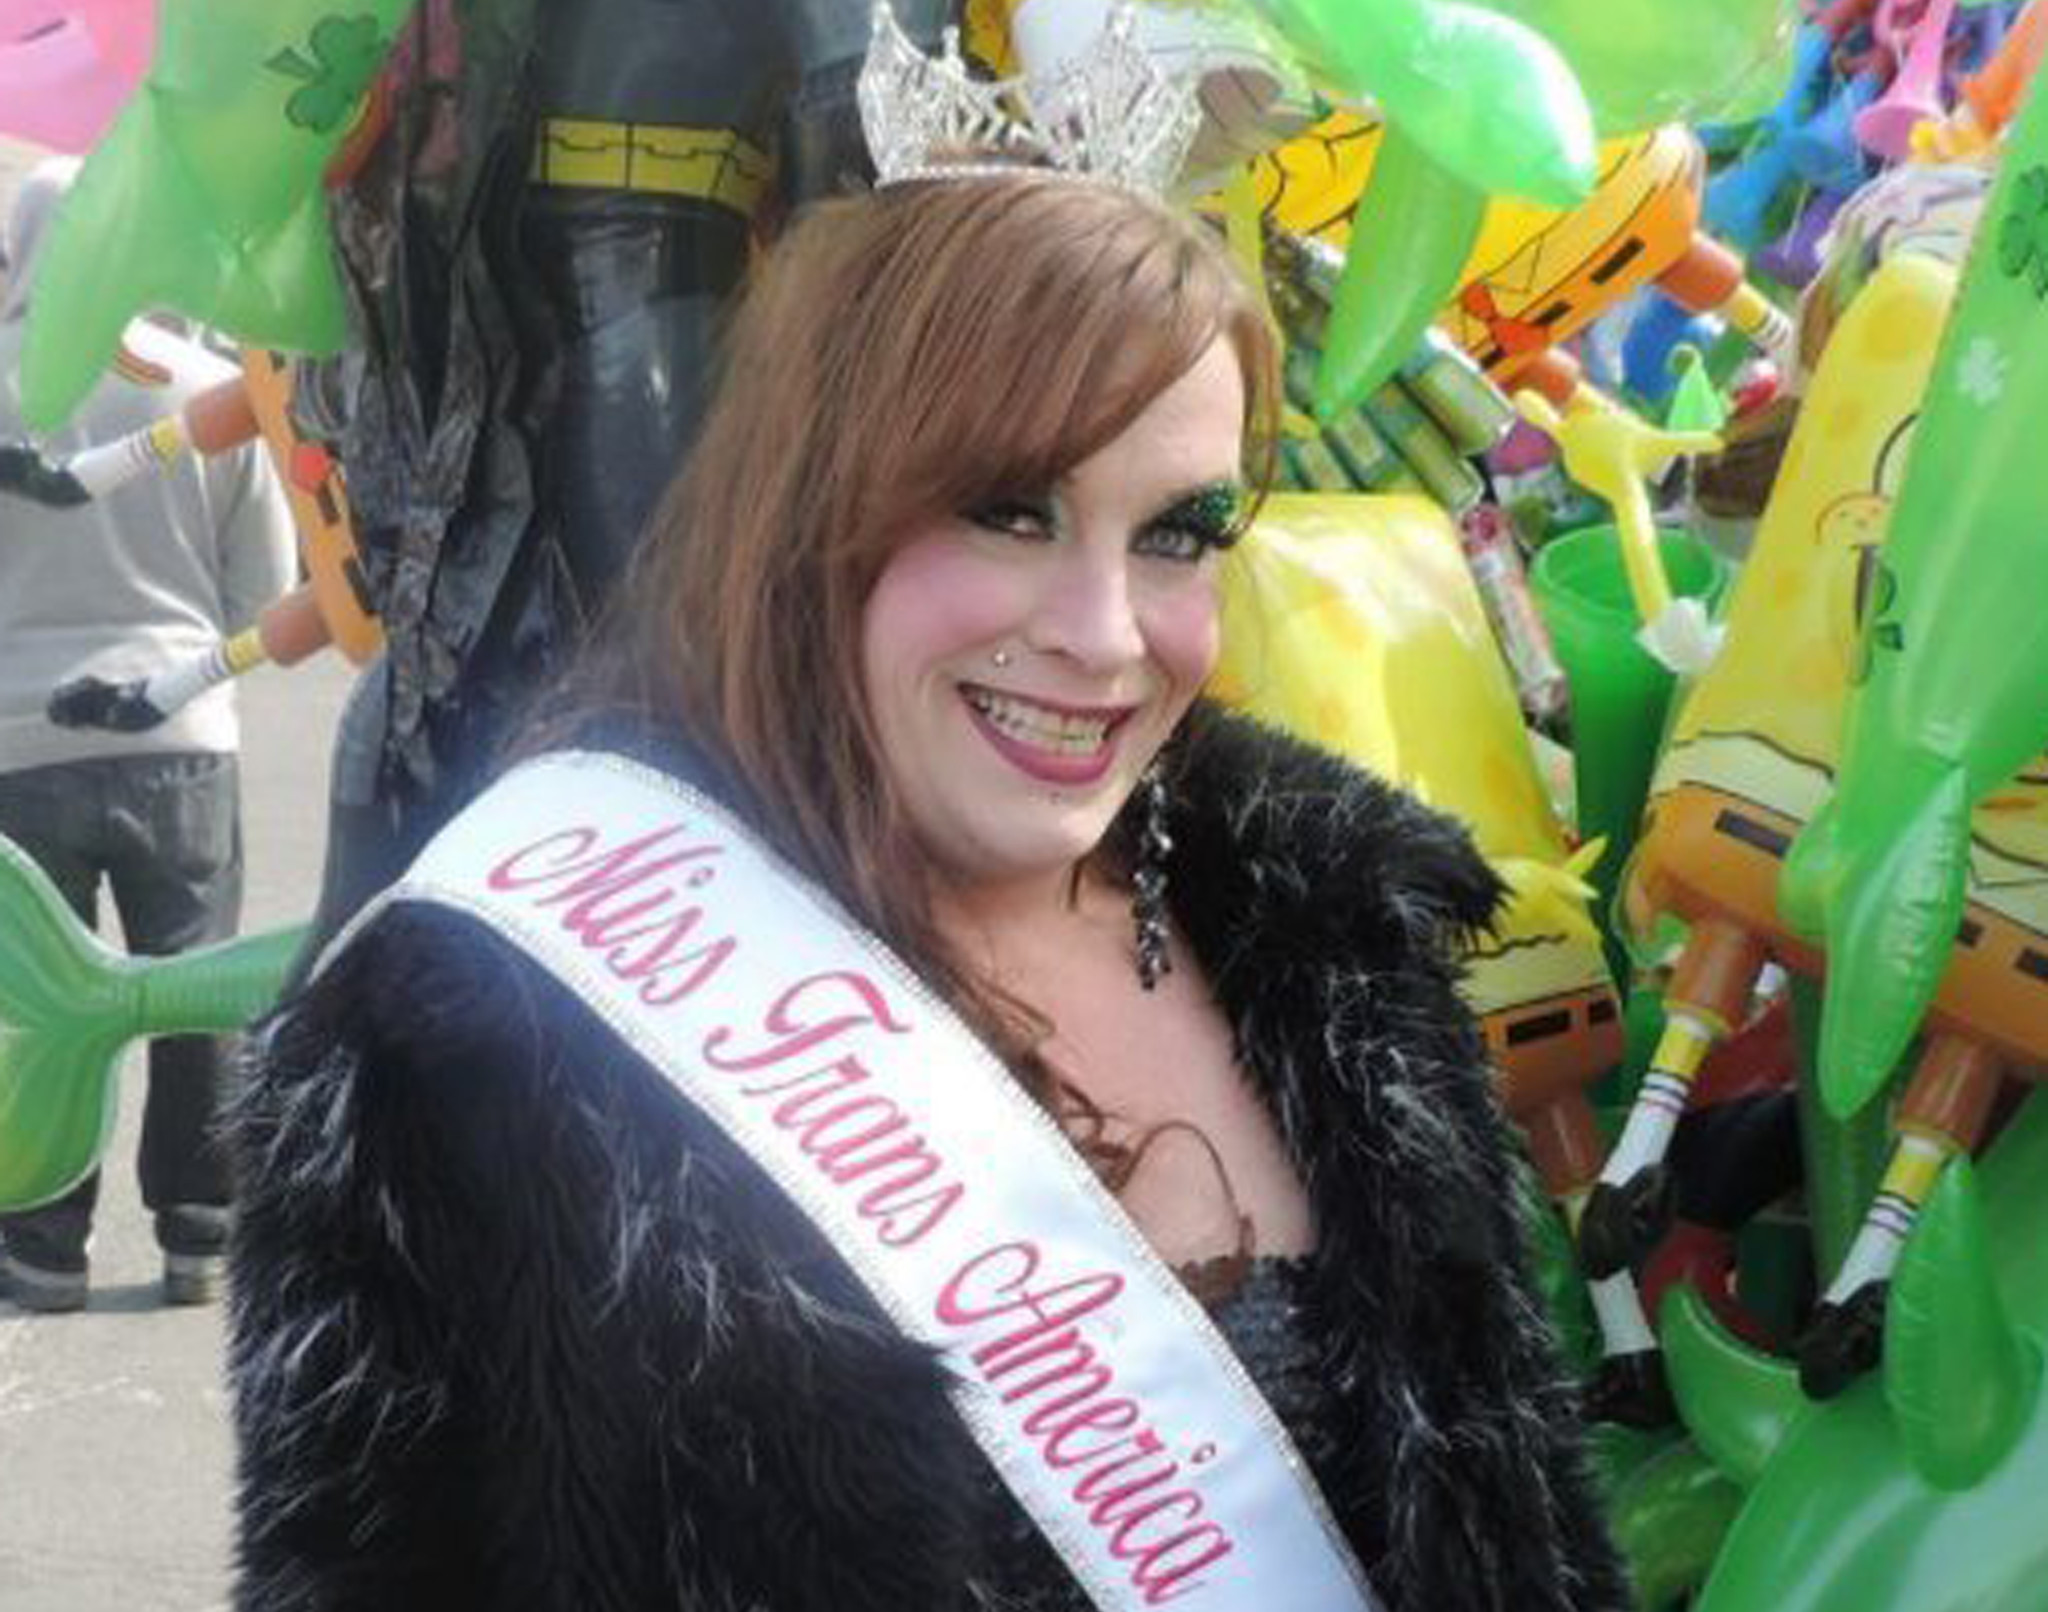 Massachusetts man admits to killing wife, a prominent transgender activist, by stabbing, hitting her with hammer